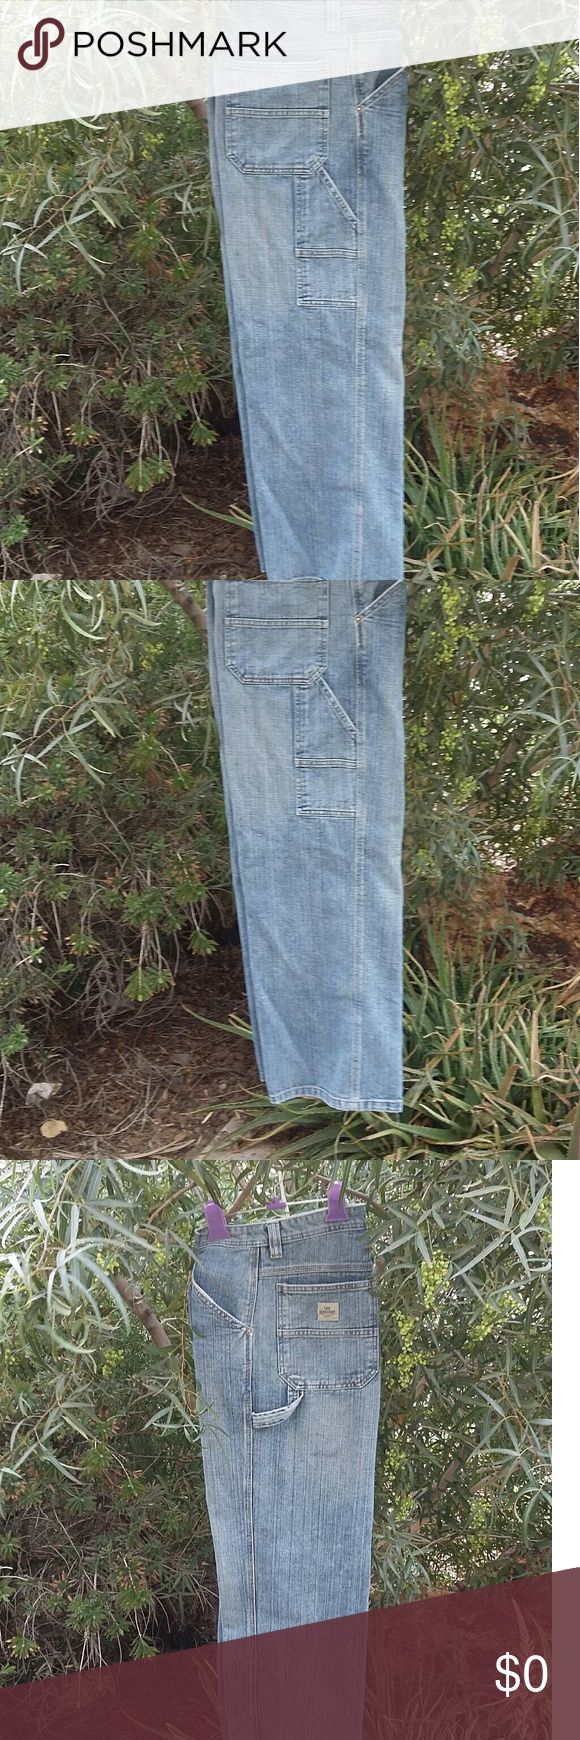 Lee's Jeans Lee's Jeans Carpenter Style. Size 18 in boys or 30 waist in mens. Lee Jeans Relaxed